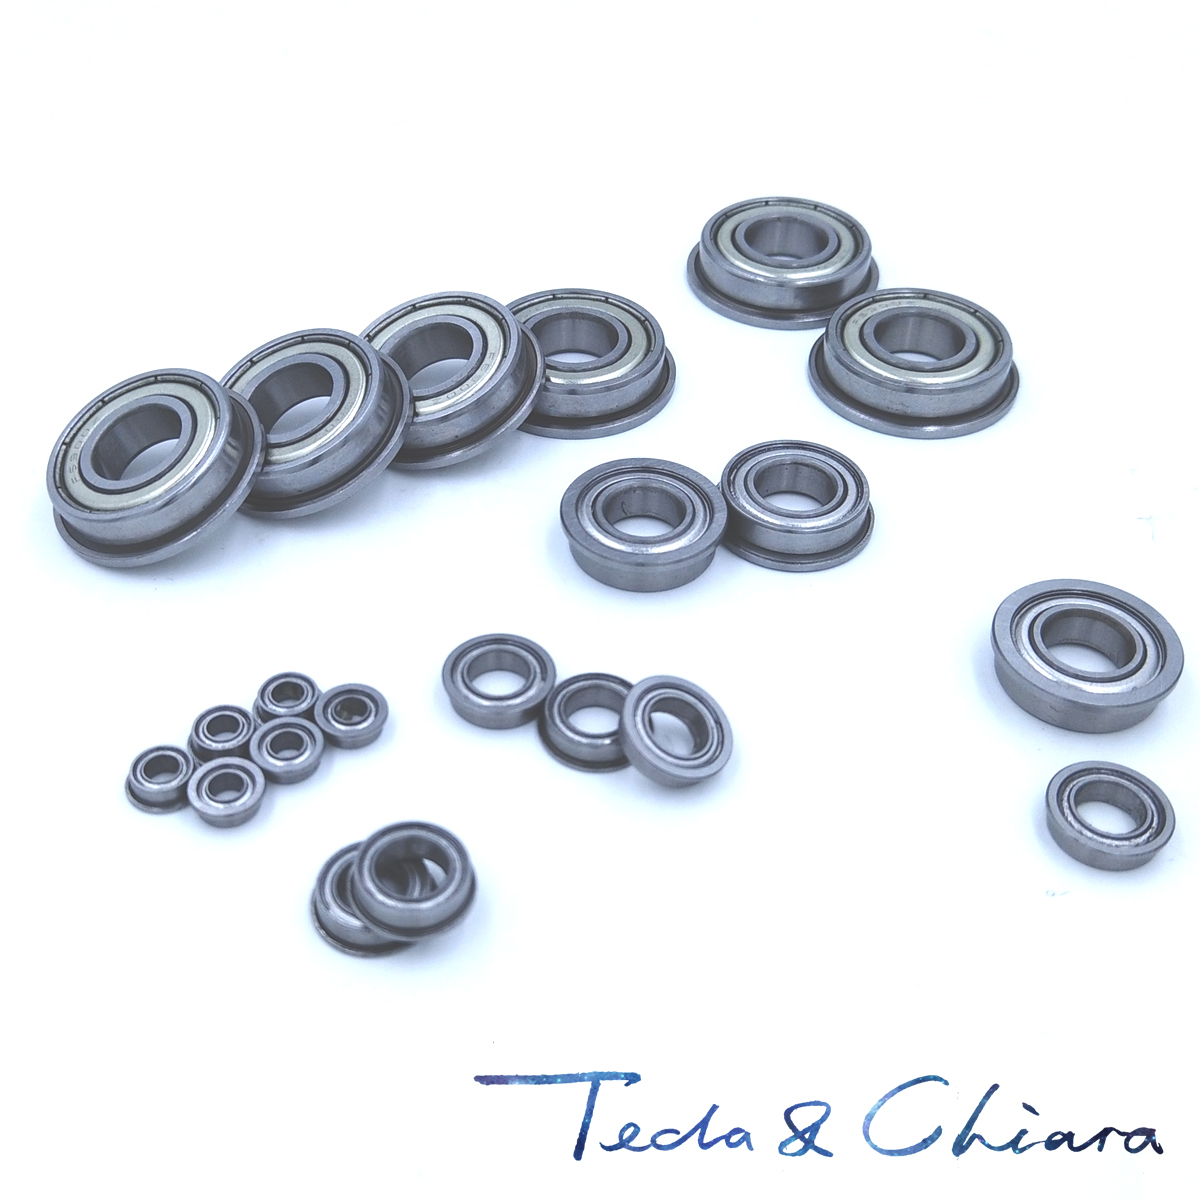 10Pcs 1Lot F604 F604-ZZ F604ZZ F604-2Z F604Z Zz Z 2z Flange Flanged Deep Groove Ball Bearings 4 X 12 X 4mm